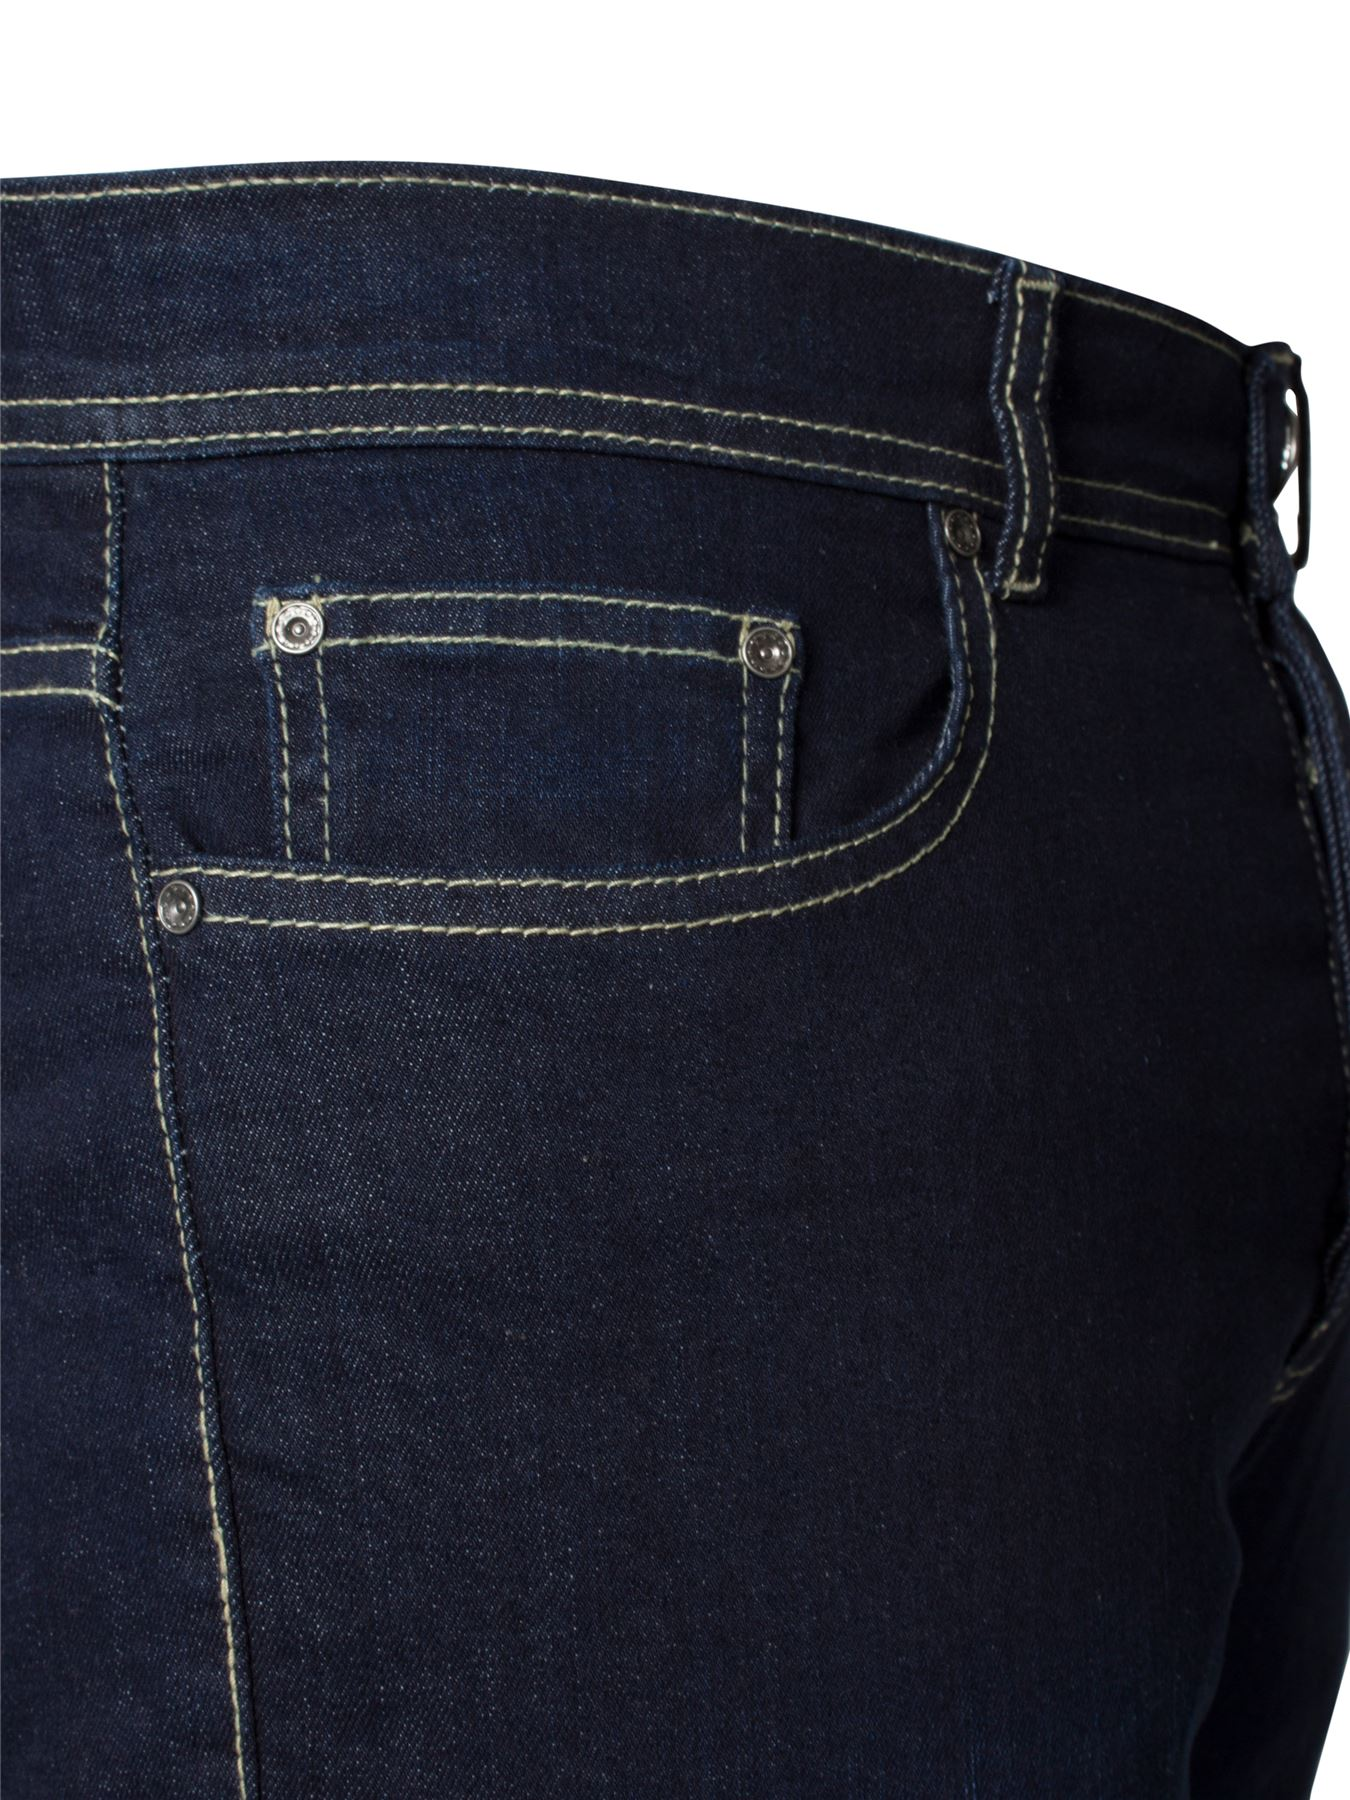 Kruze-Mens-Basic-Straight-Leg-Bootcut-Stretch-Jeans-Denim-Regular-Big-Tall-Waist thumbnail 60